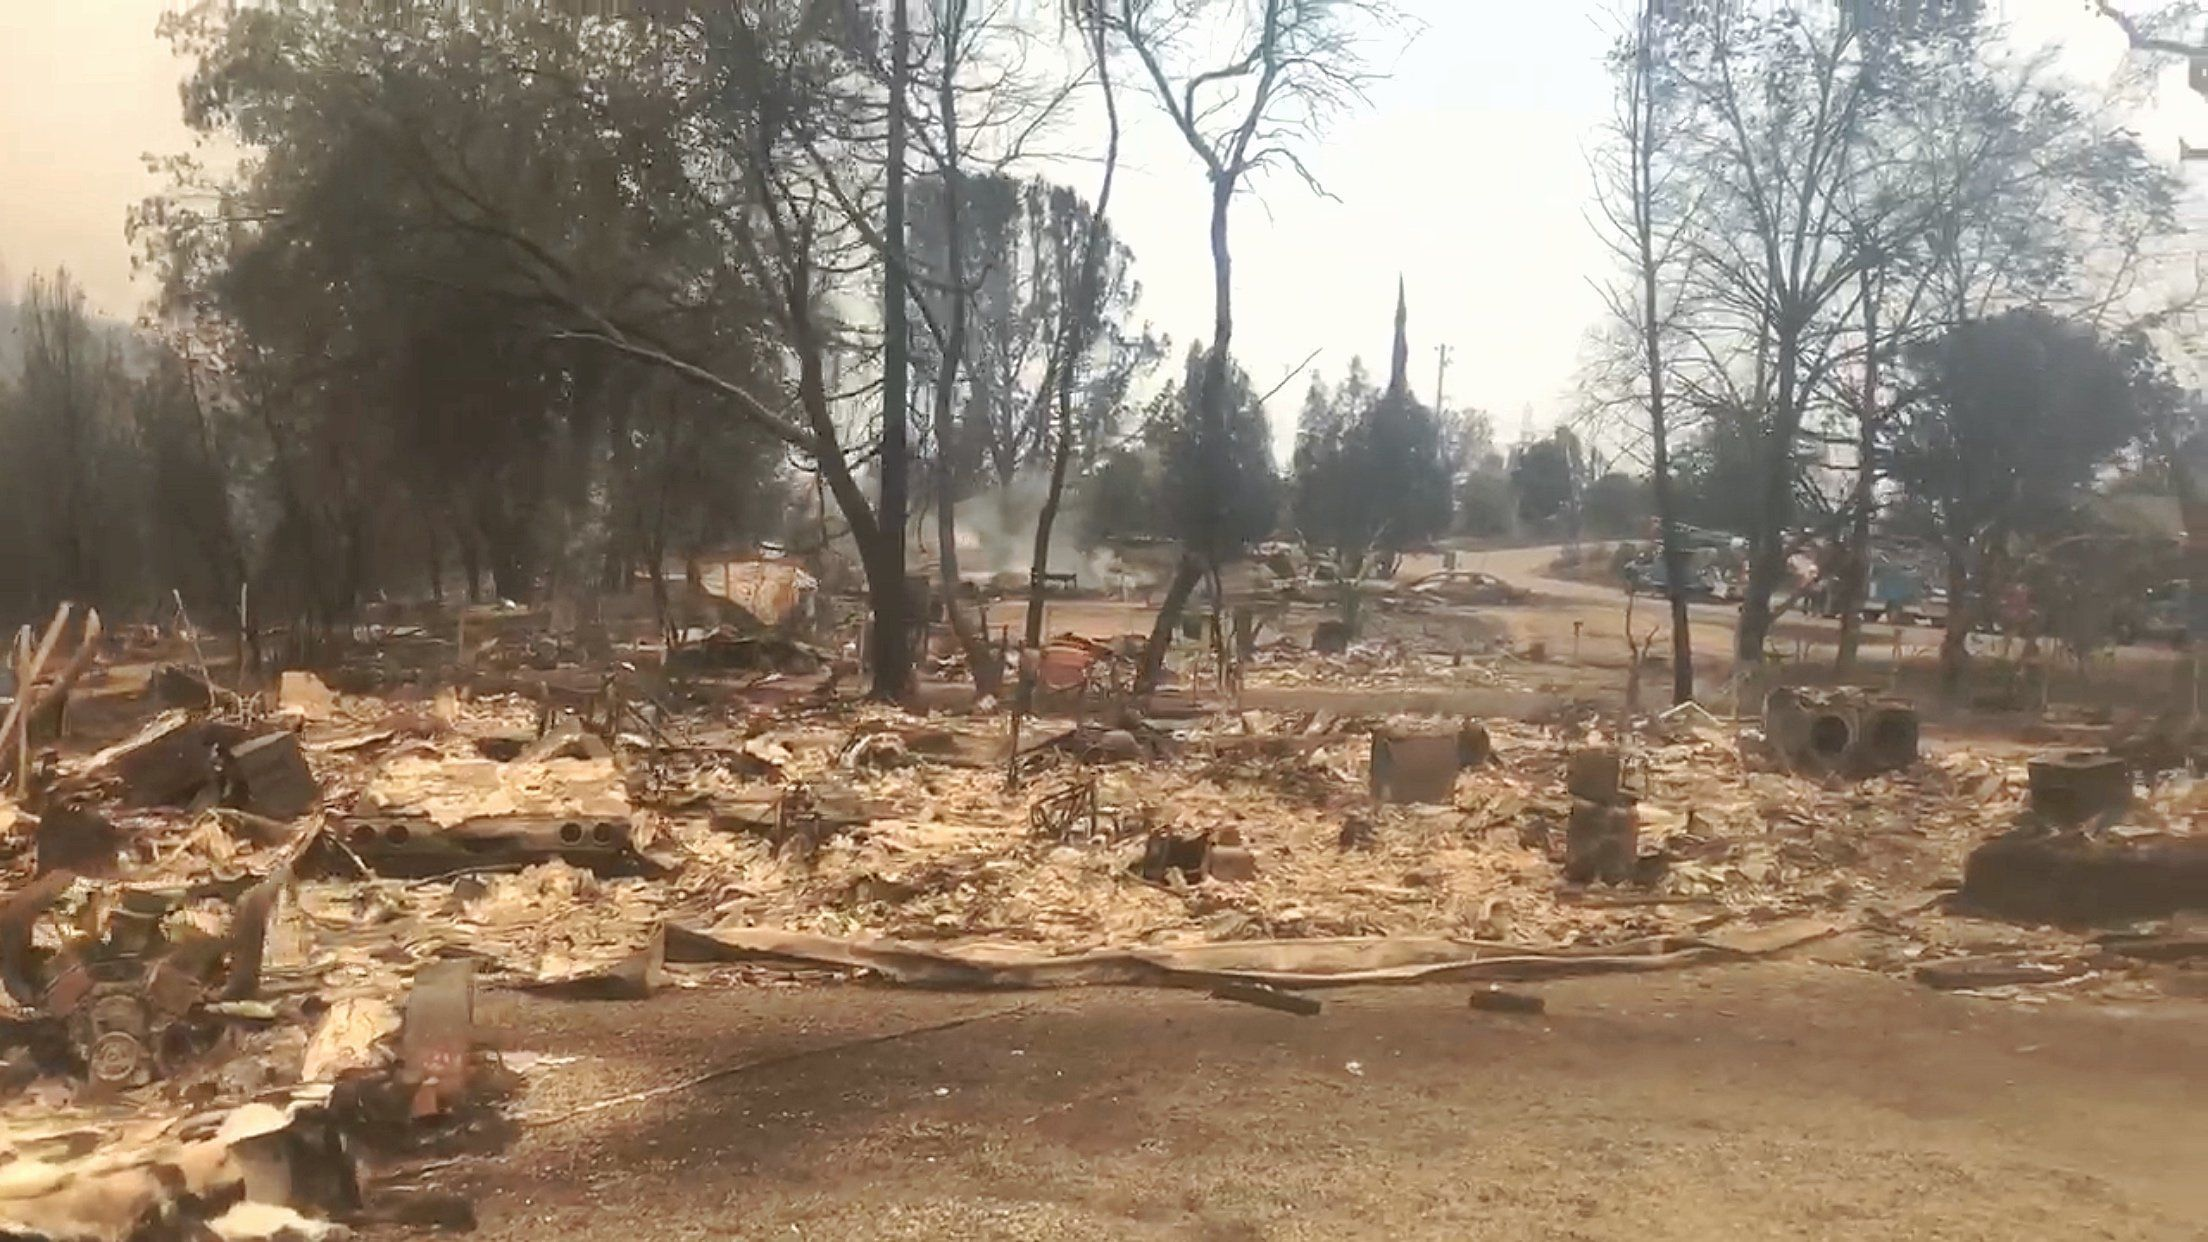 Jason Campbells property after the Carr fire hit near Redding California -- July 27 2018